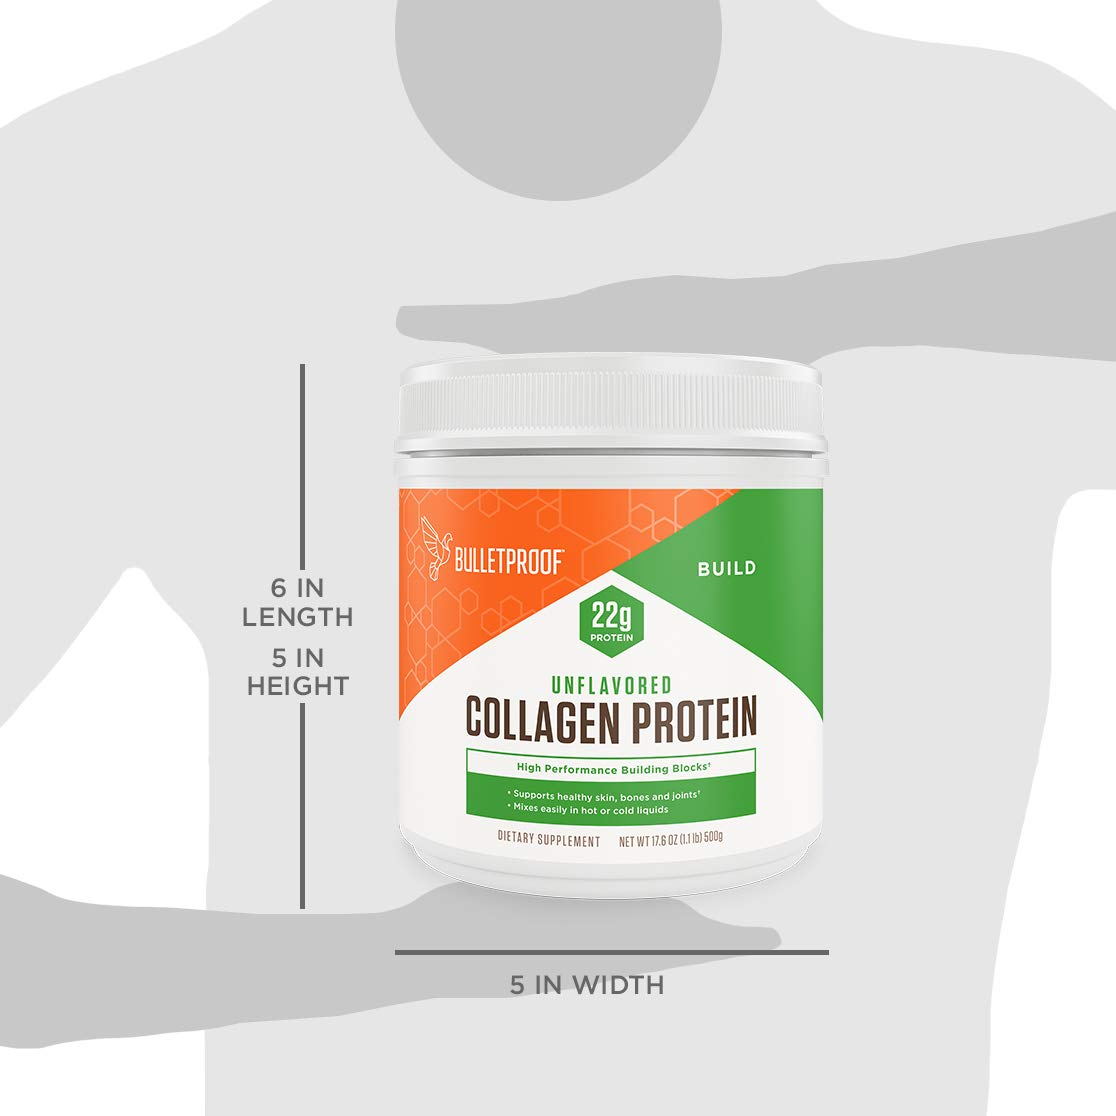 Bulletproof Collagen Protein Powder, Unflavored, Keto-Friendly, Paleo, Grass-fed Collagen, Amino Acid Building Blocks for High Performance (17.6 oz) by Bulletproof